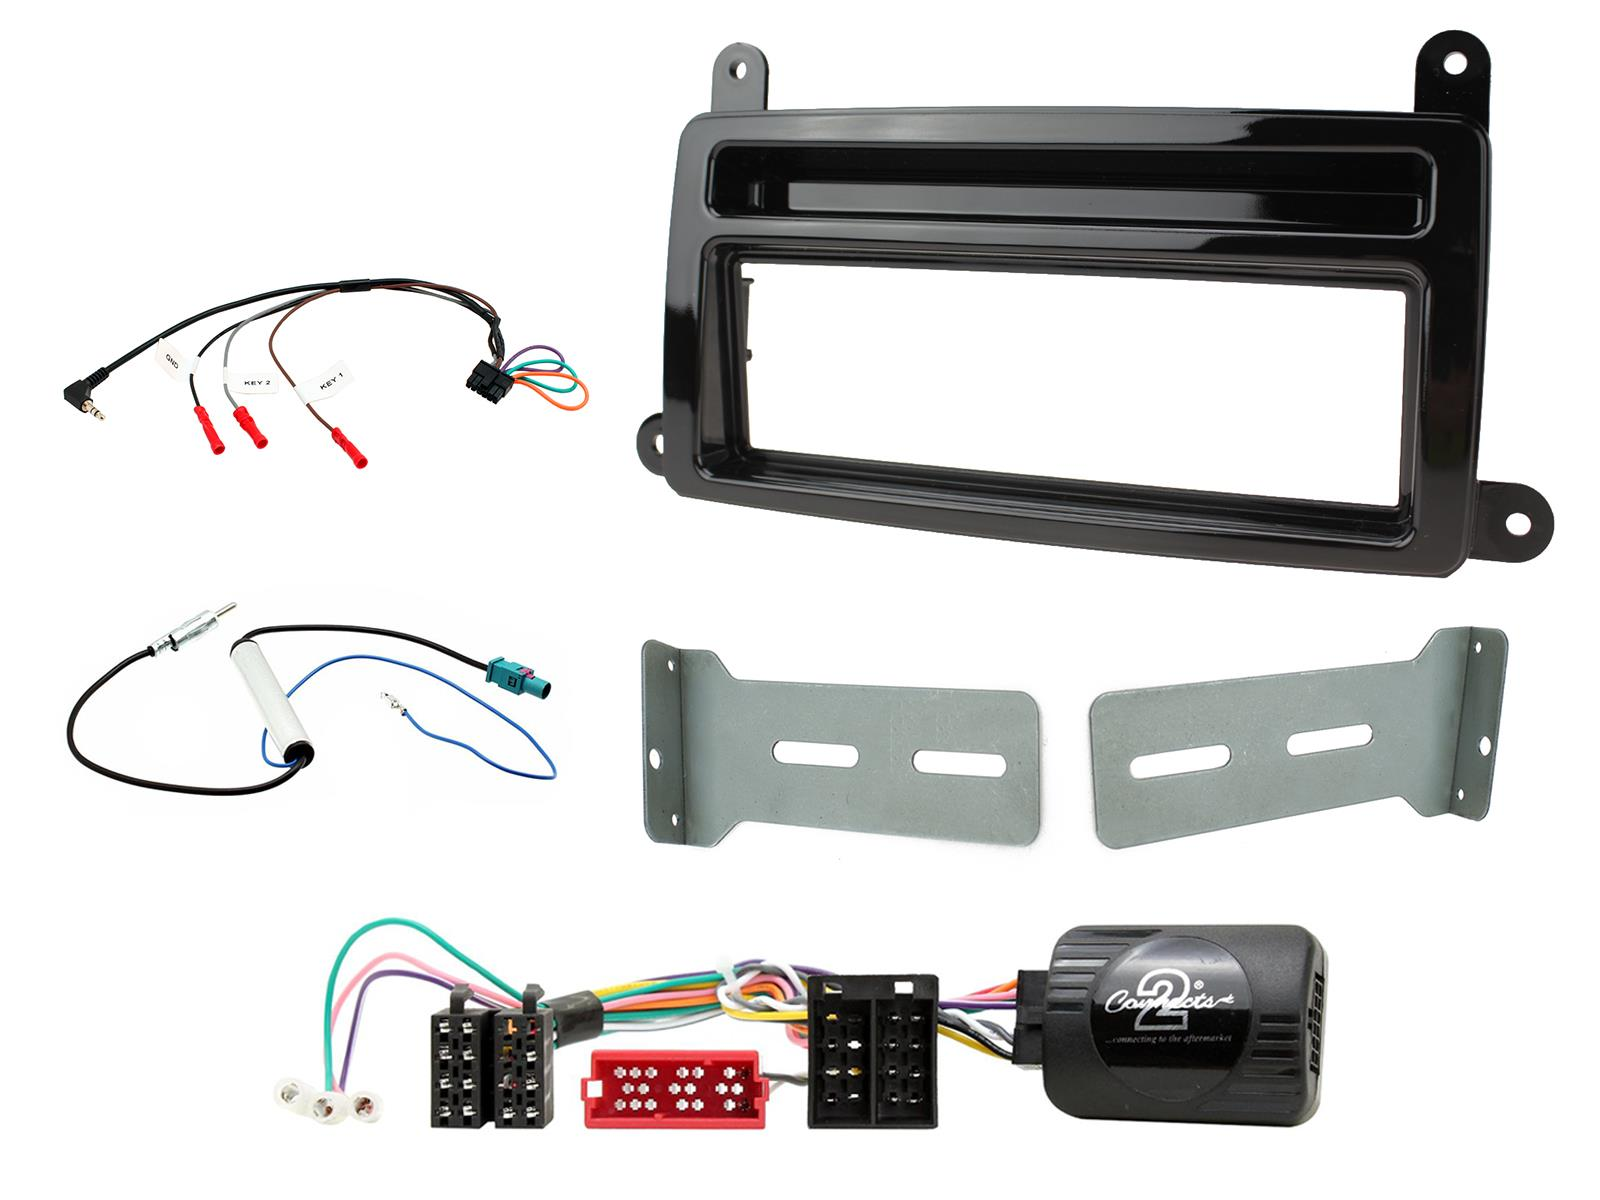 2DIN KIT Renault Clio 2017 - without oem navi